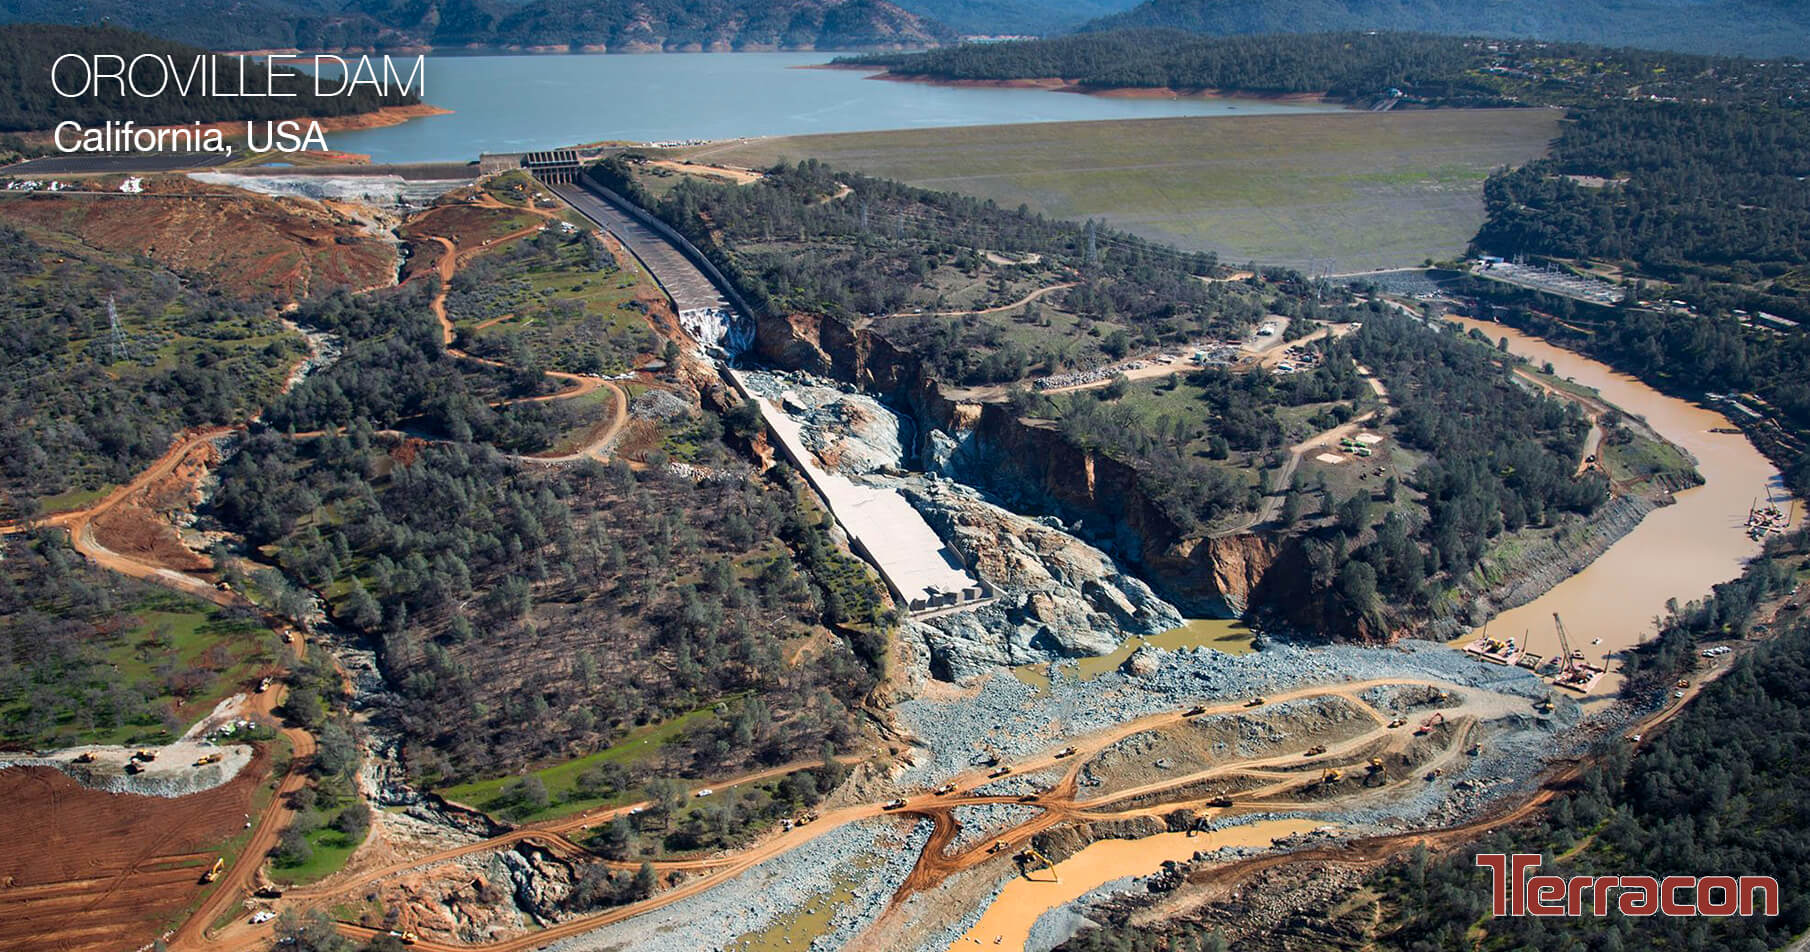 Project Highlight: Oroville Dam